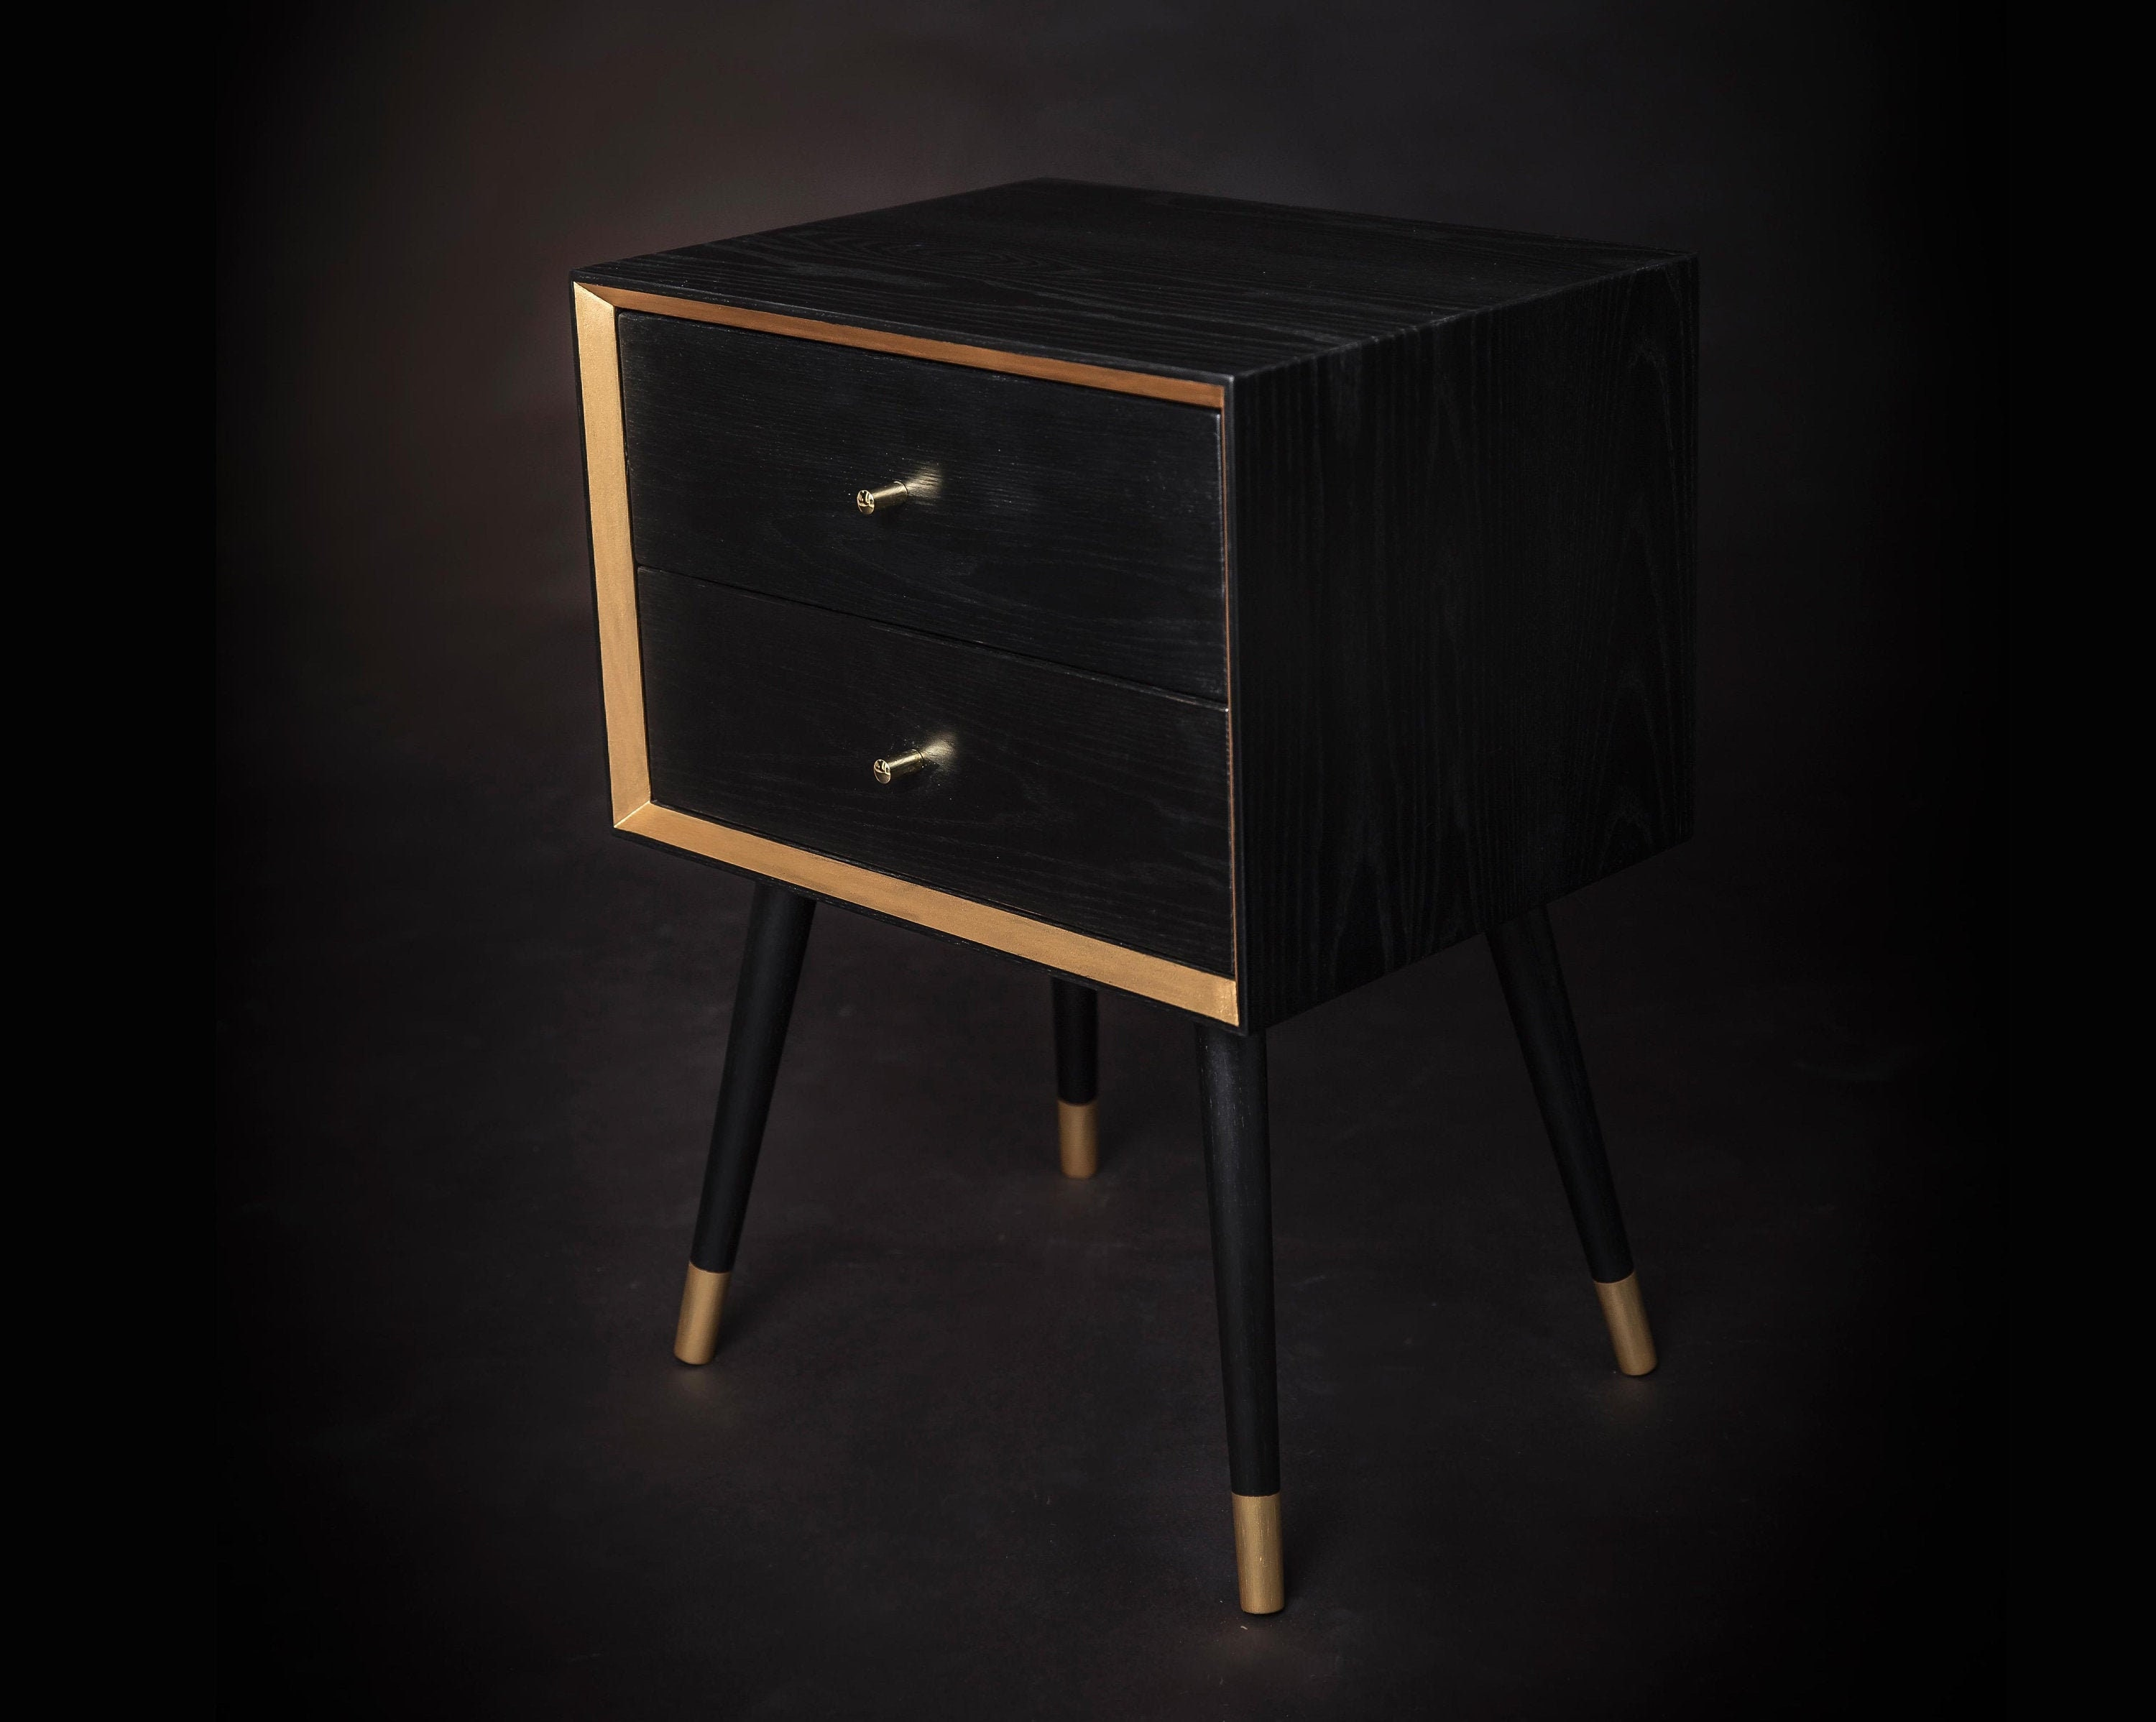 Solid Oak Wood Mid Century Nightstand Black Bedside Table